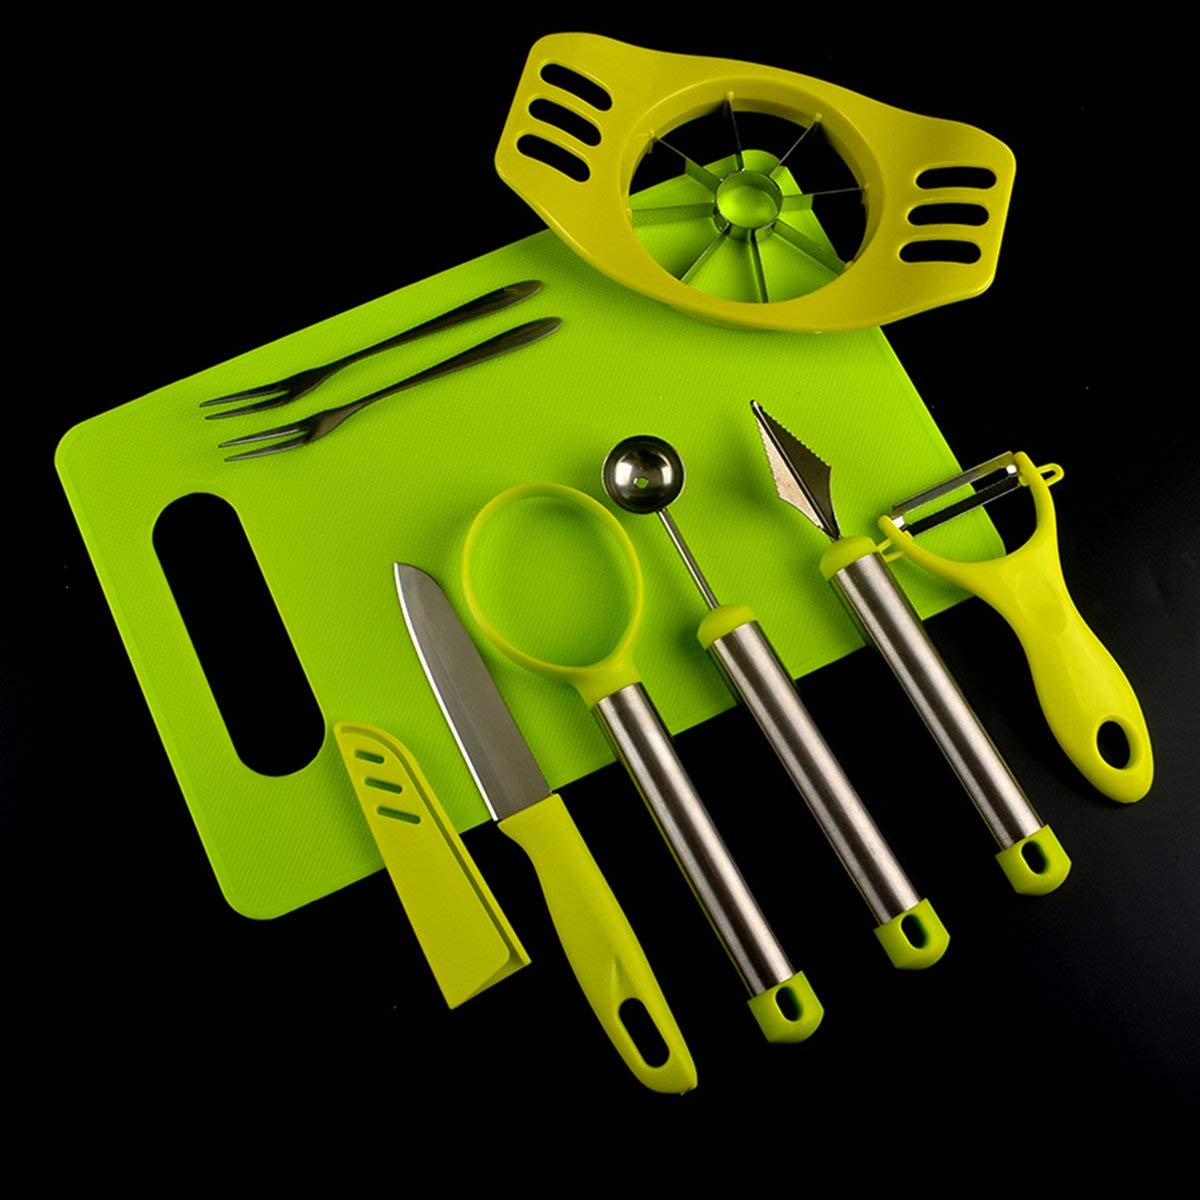 Stainless Steel & Food Grade Silicone Fruit Tools Set, Dual-Purpose Melon Baller Scoop and Fruit Carving Knife,Swivel Fruit and Vegetable Peeler